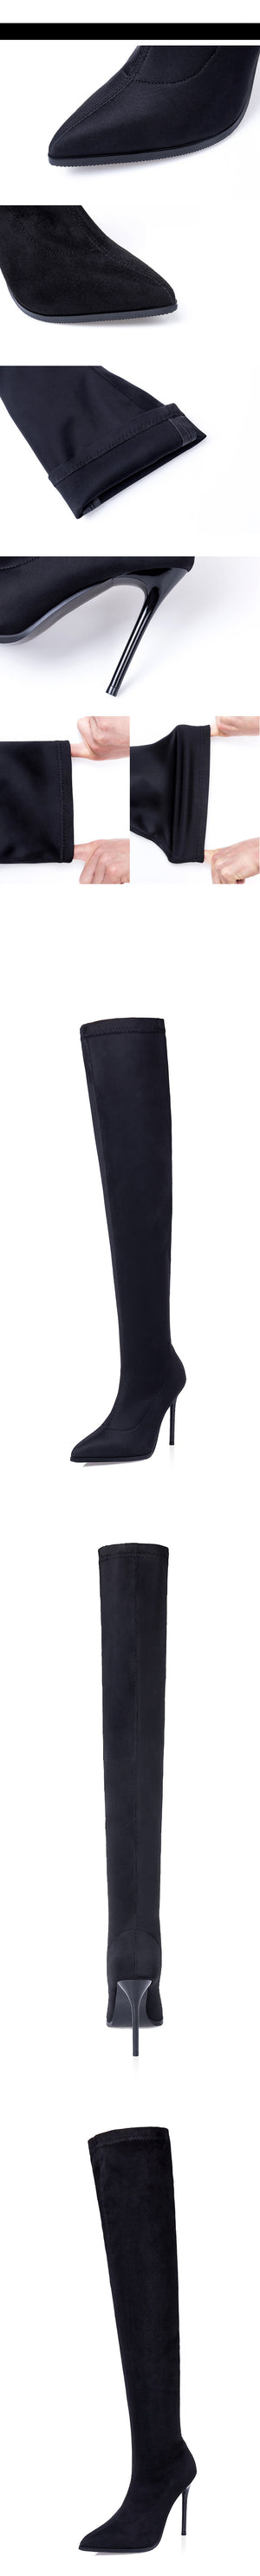 Walking Tall - Black Pointy Toe Stiletto Heel Over-the-Knee Boots - $119.00